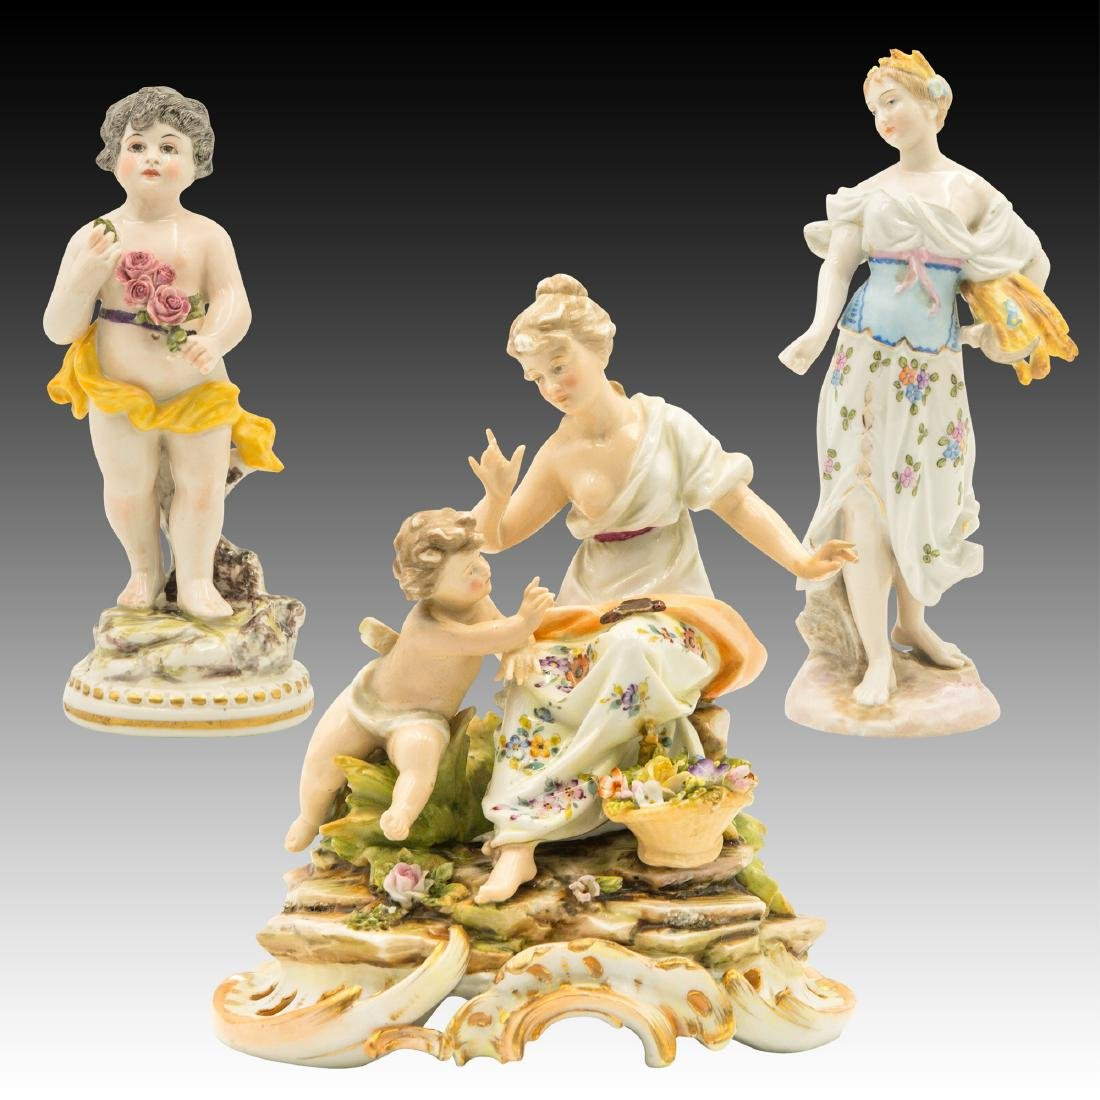 Group of 3 Continental Porcelain Figurines